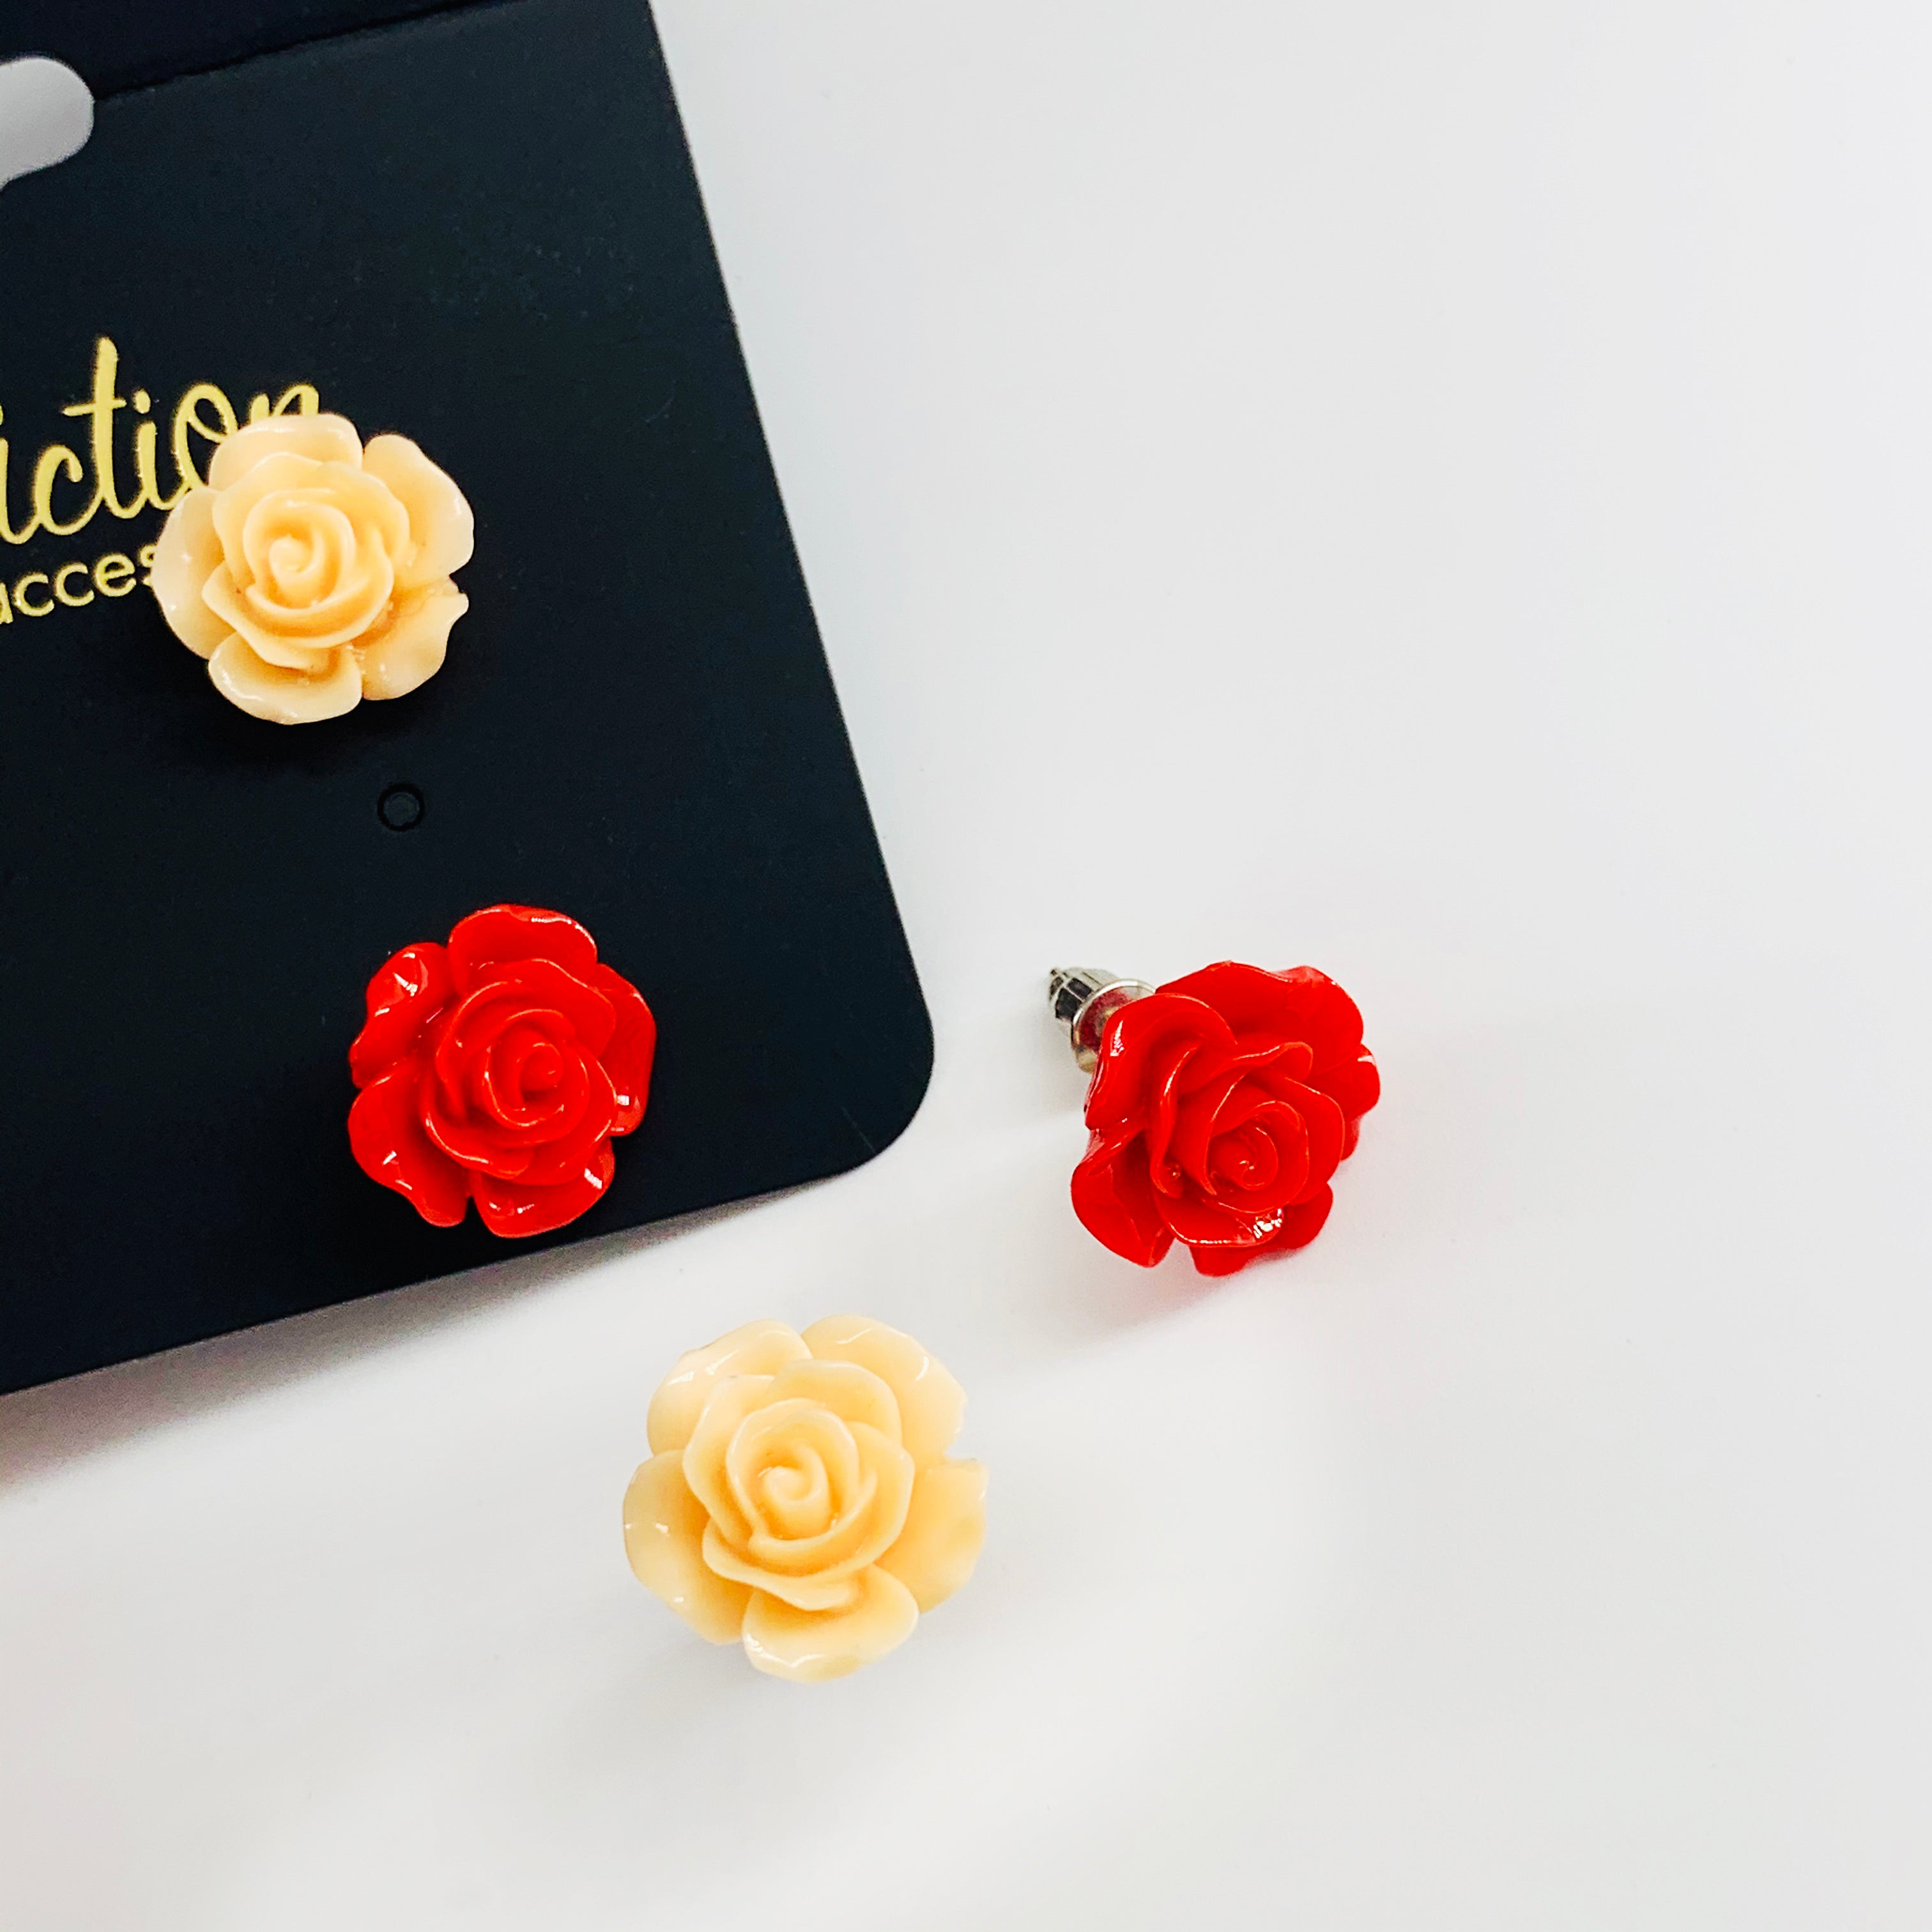 Cream and rose earrings